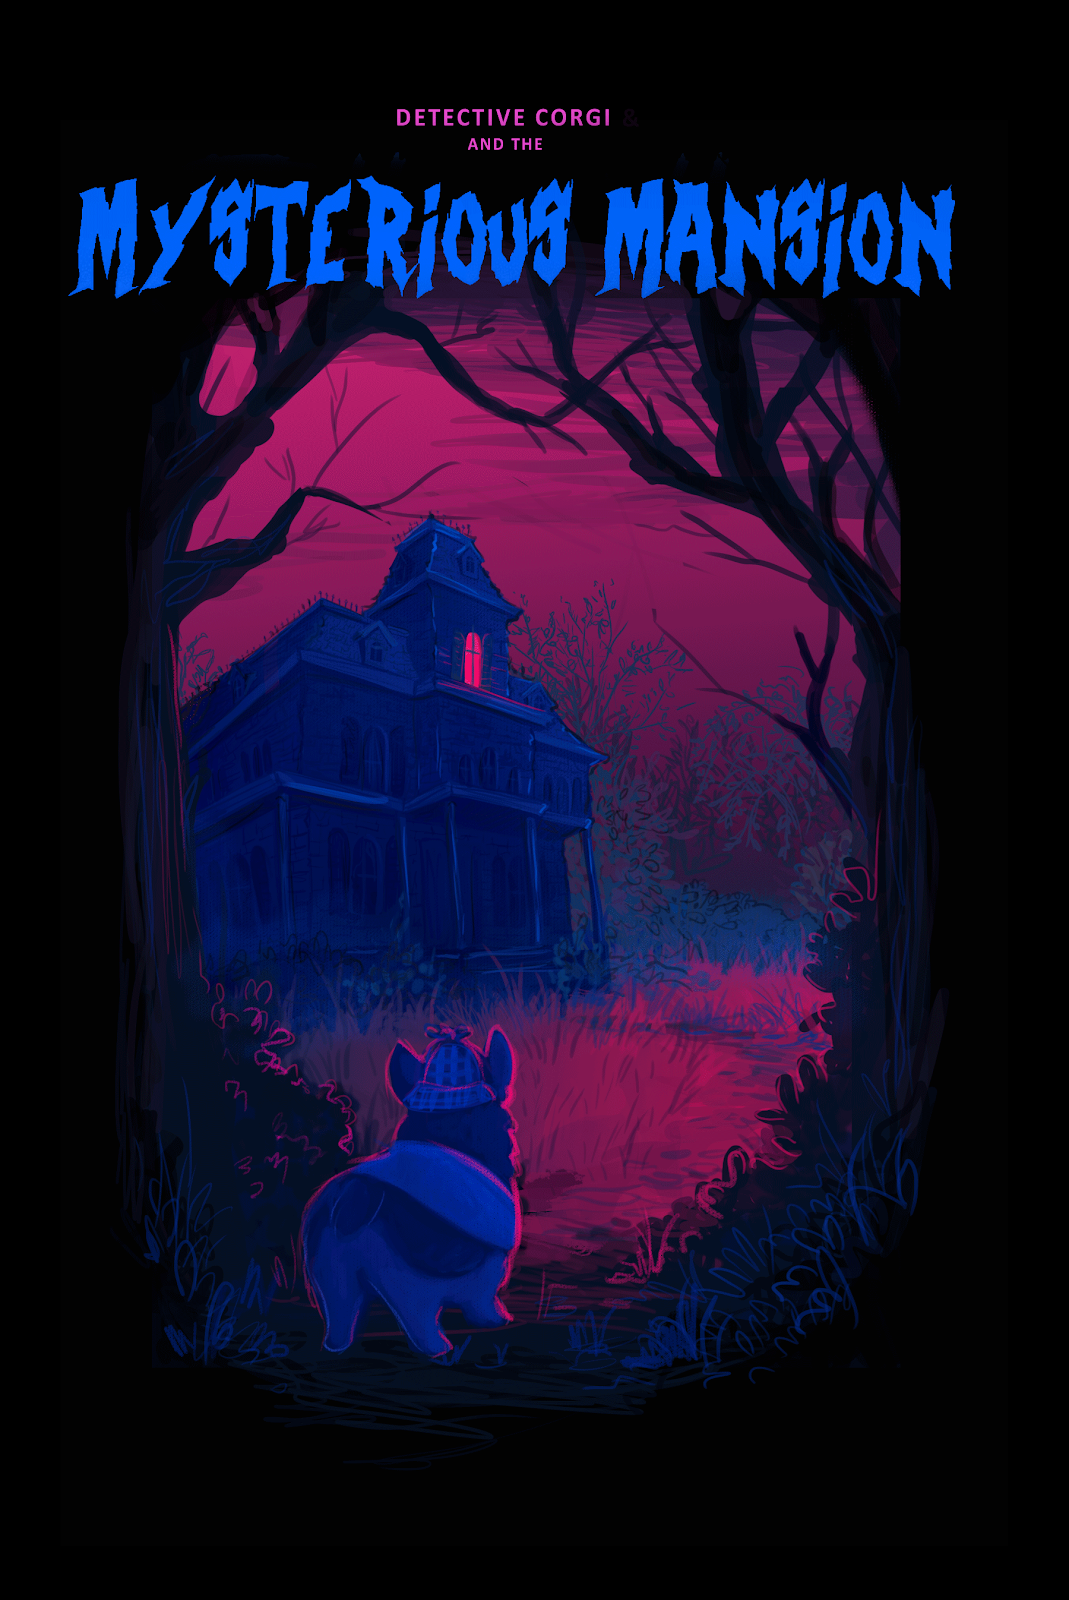 Poster for Detective Corgi and the Mysterious Mansion.